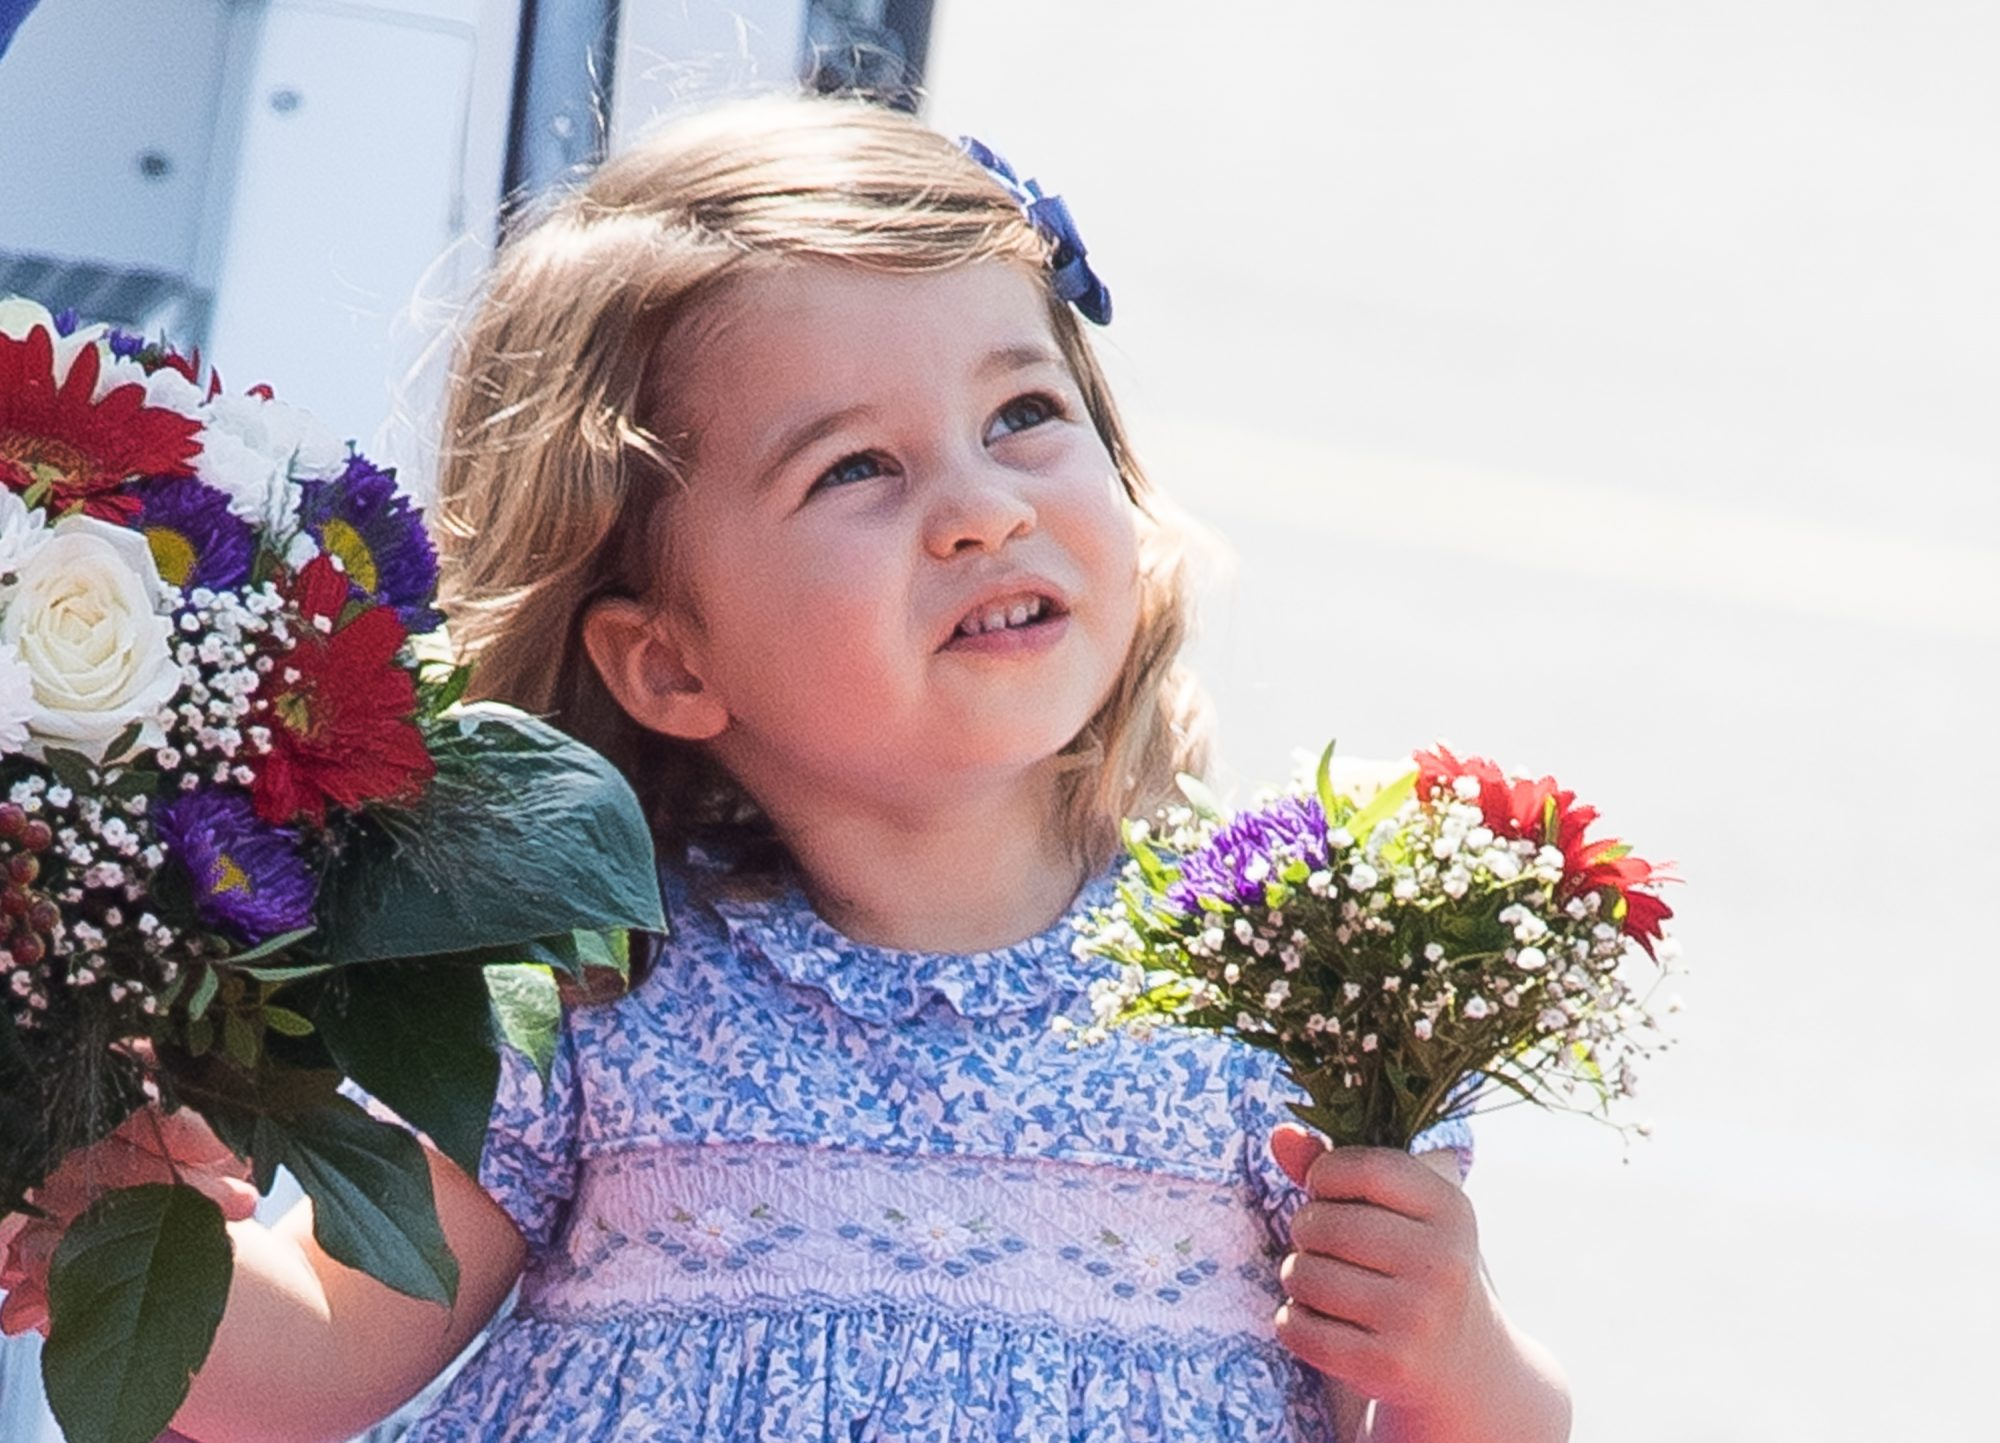 Princess Charlotte smiling with flowers